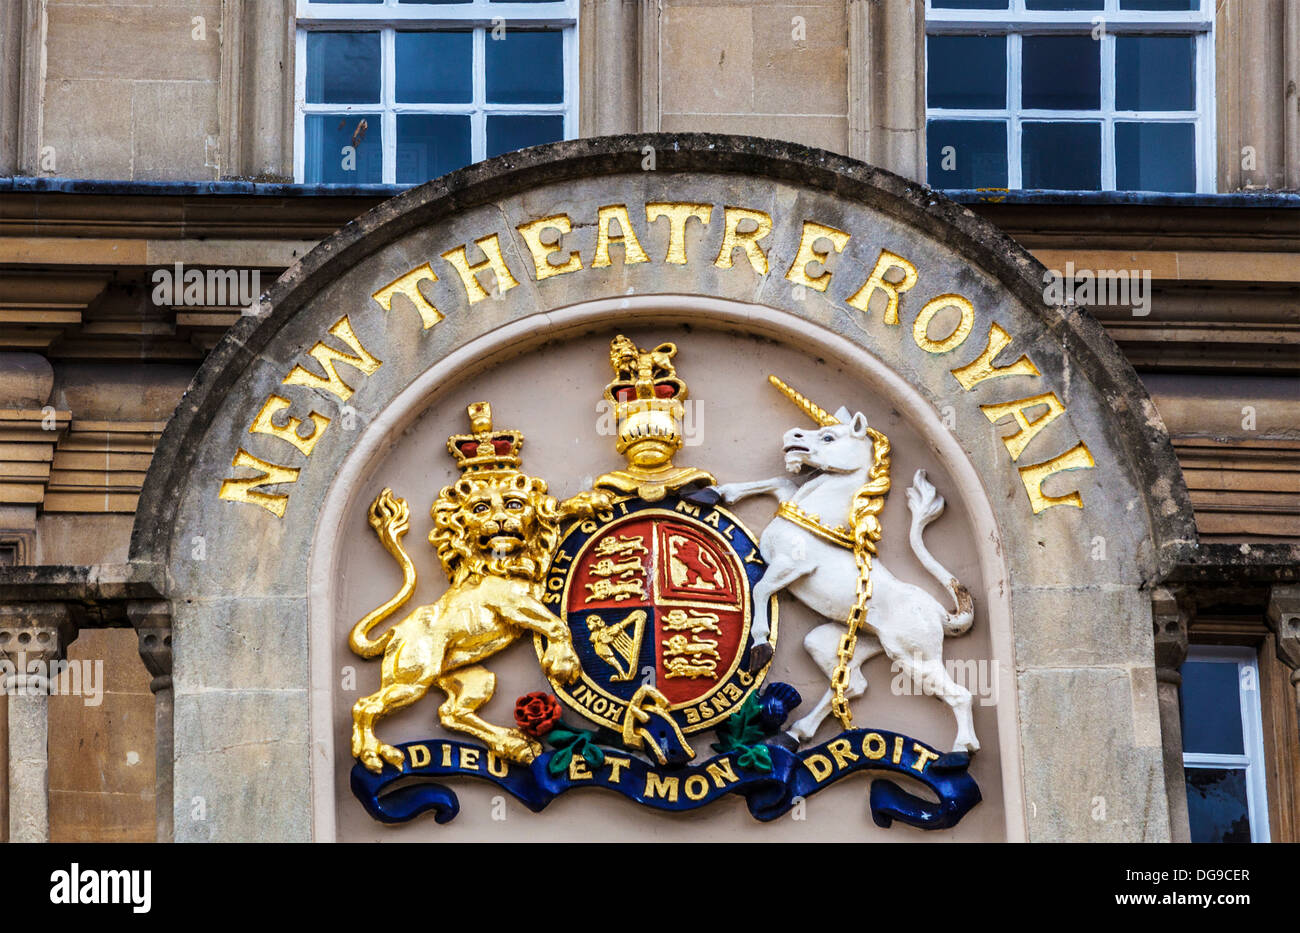 The Royal Coat of Arms above the entrance to the New Theatre Royal in Bath, UK. - Stock Image